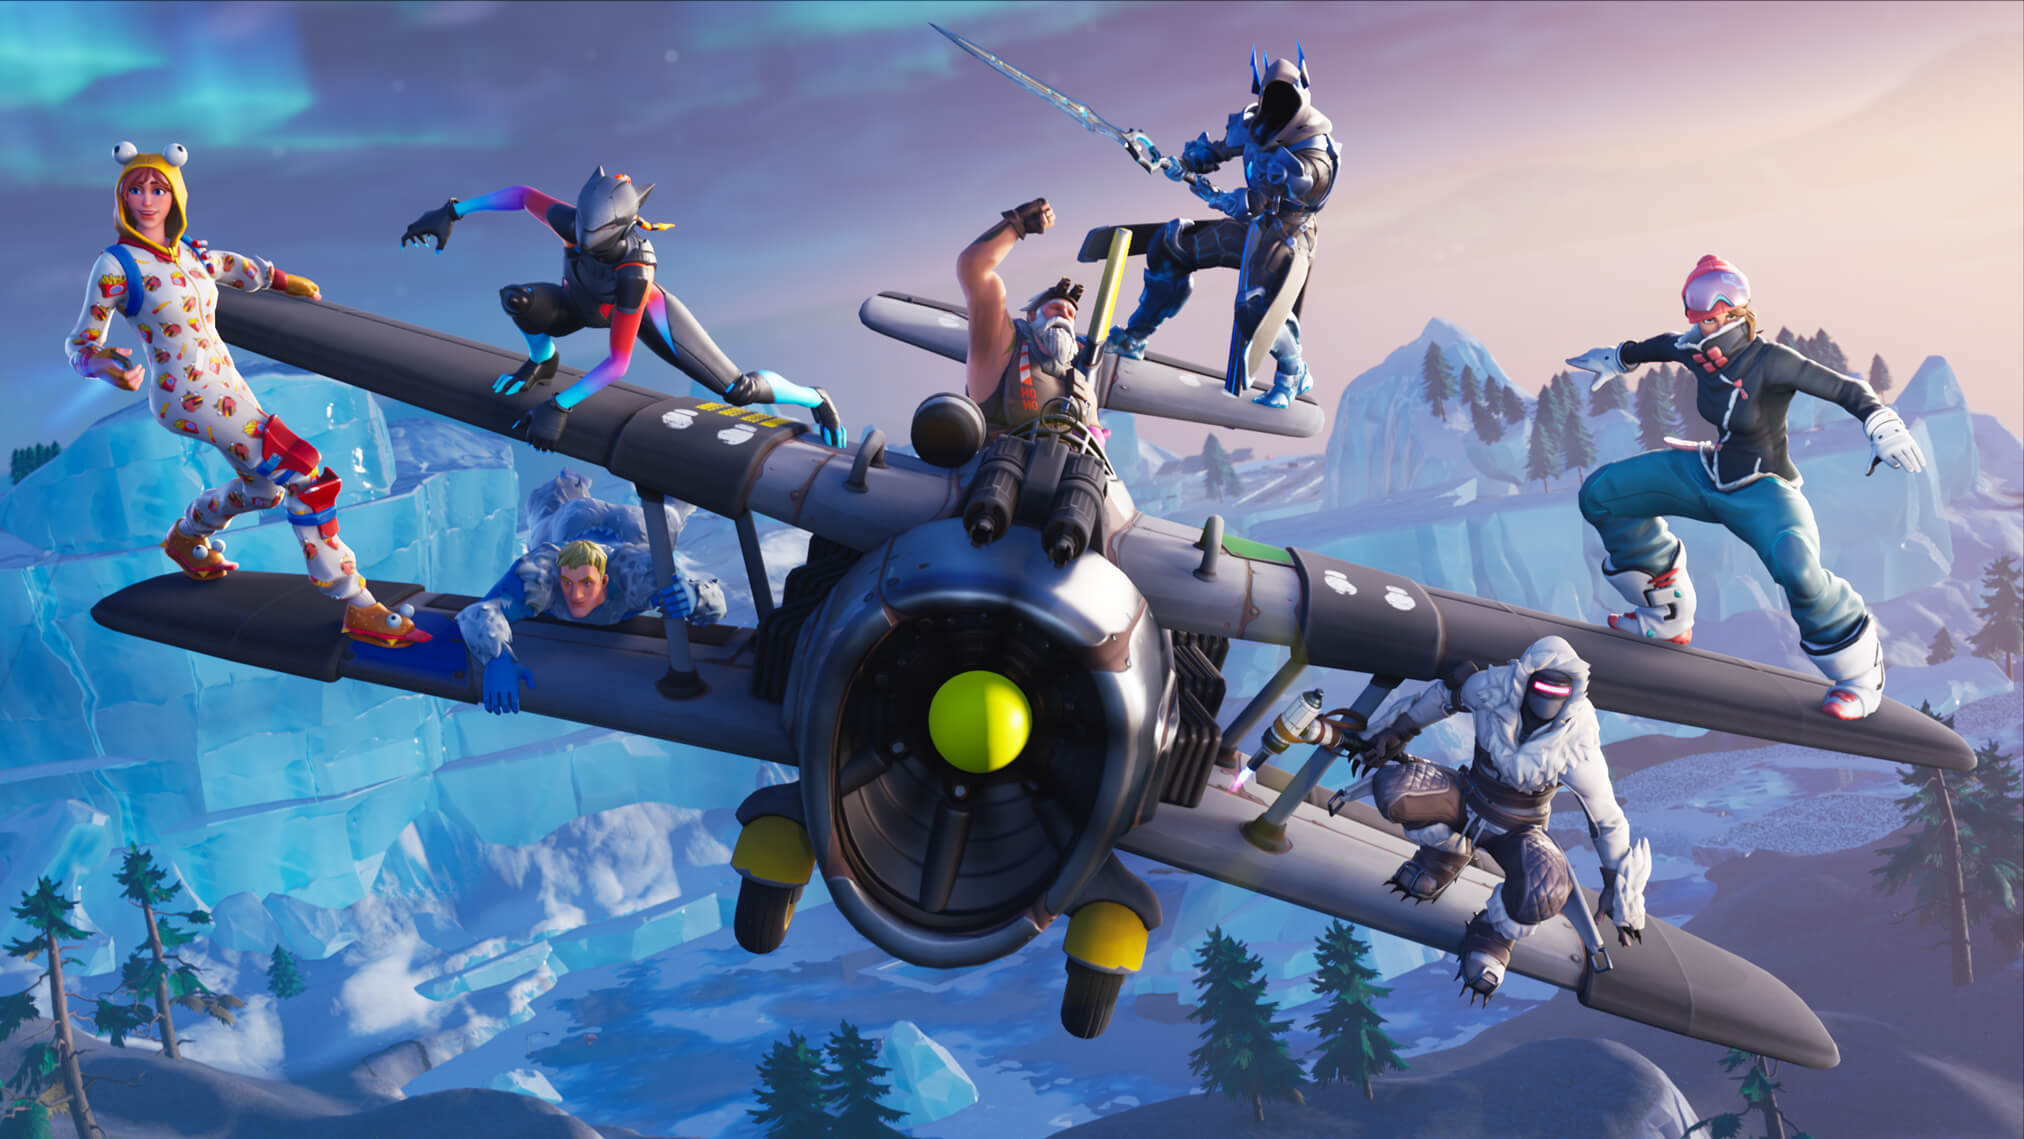 Fortnite finally allows players to merge their accounts